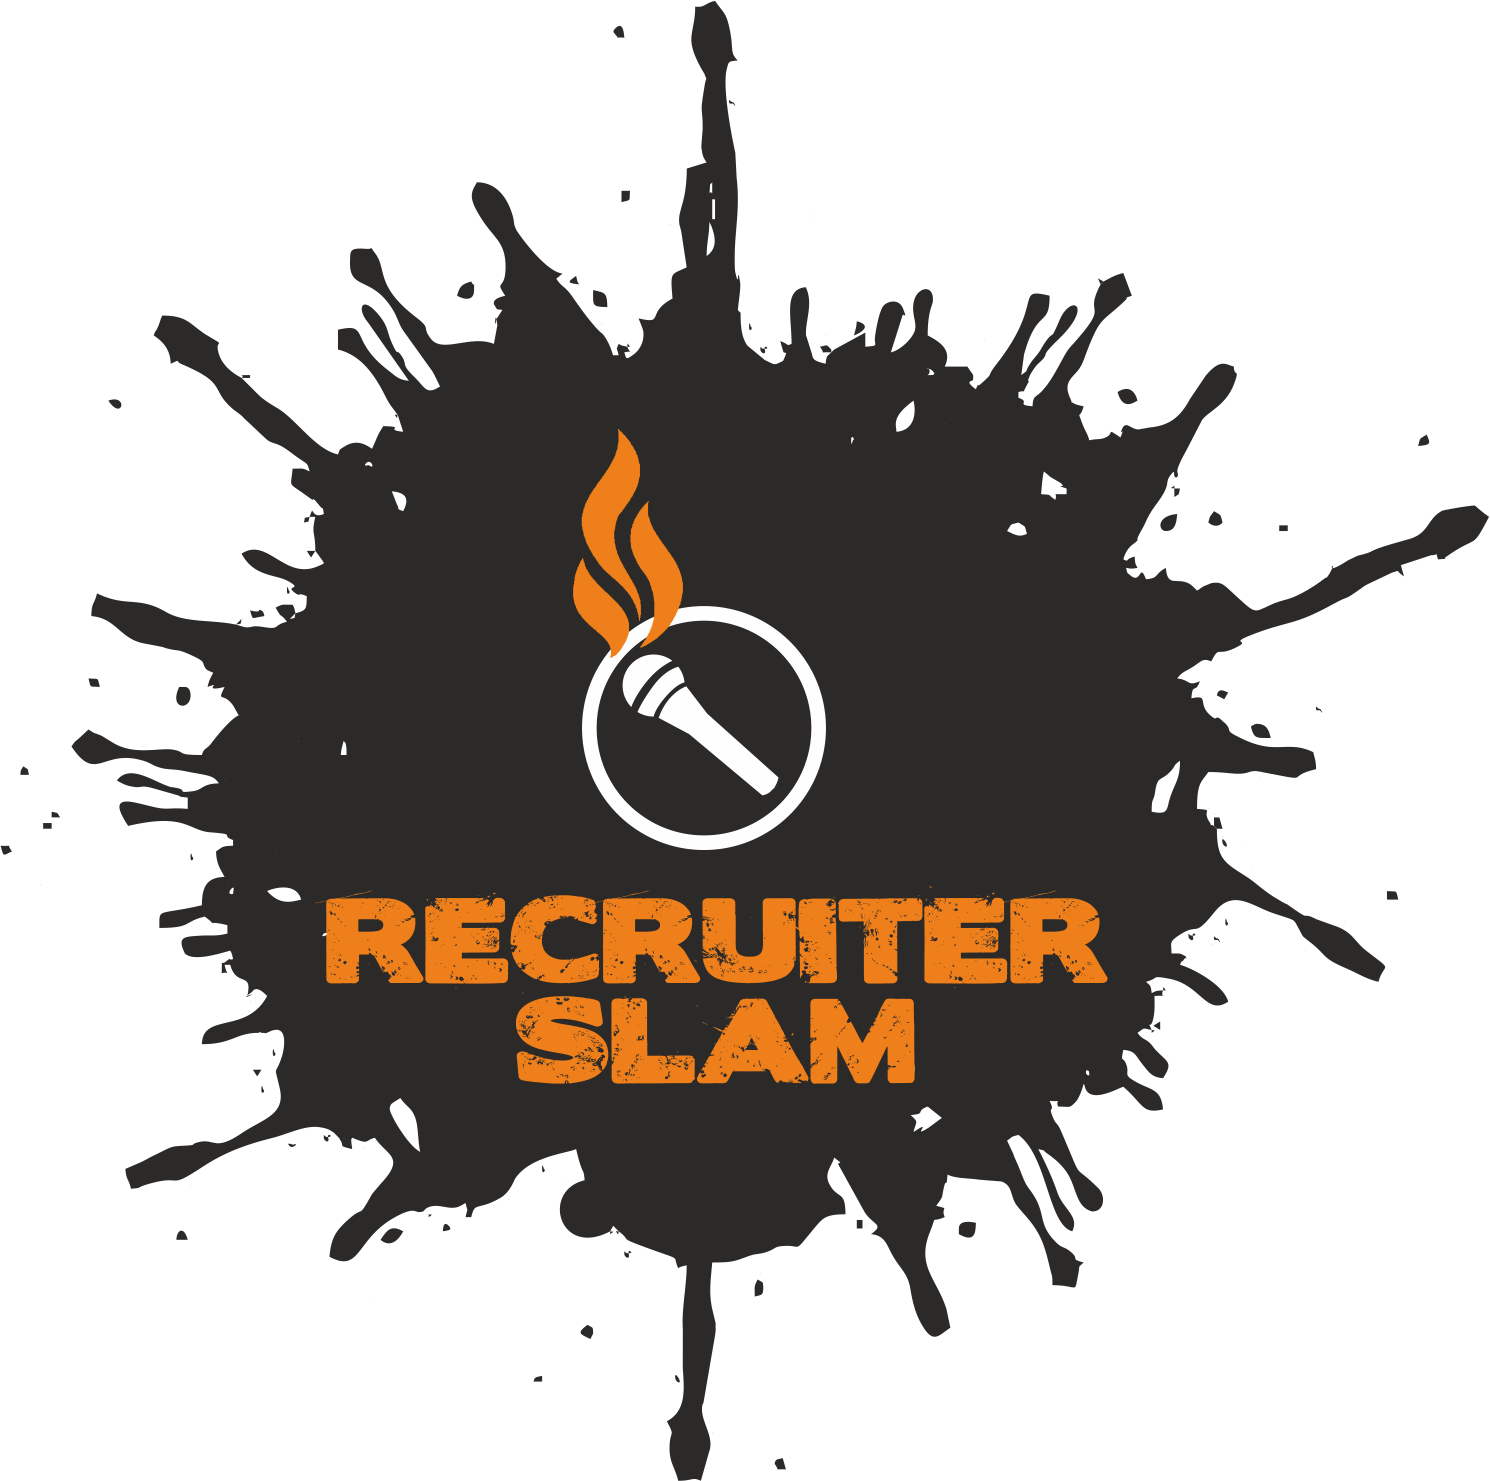 Recruiter Slam